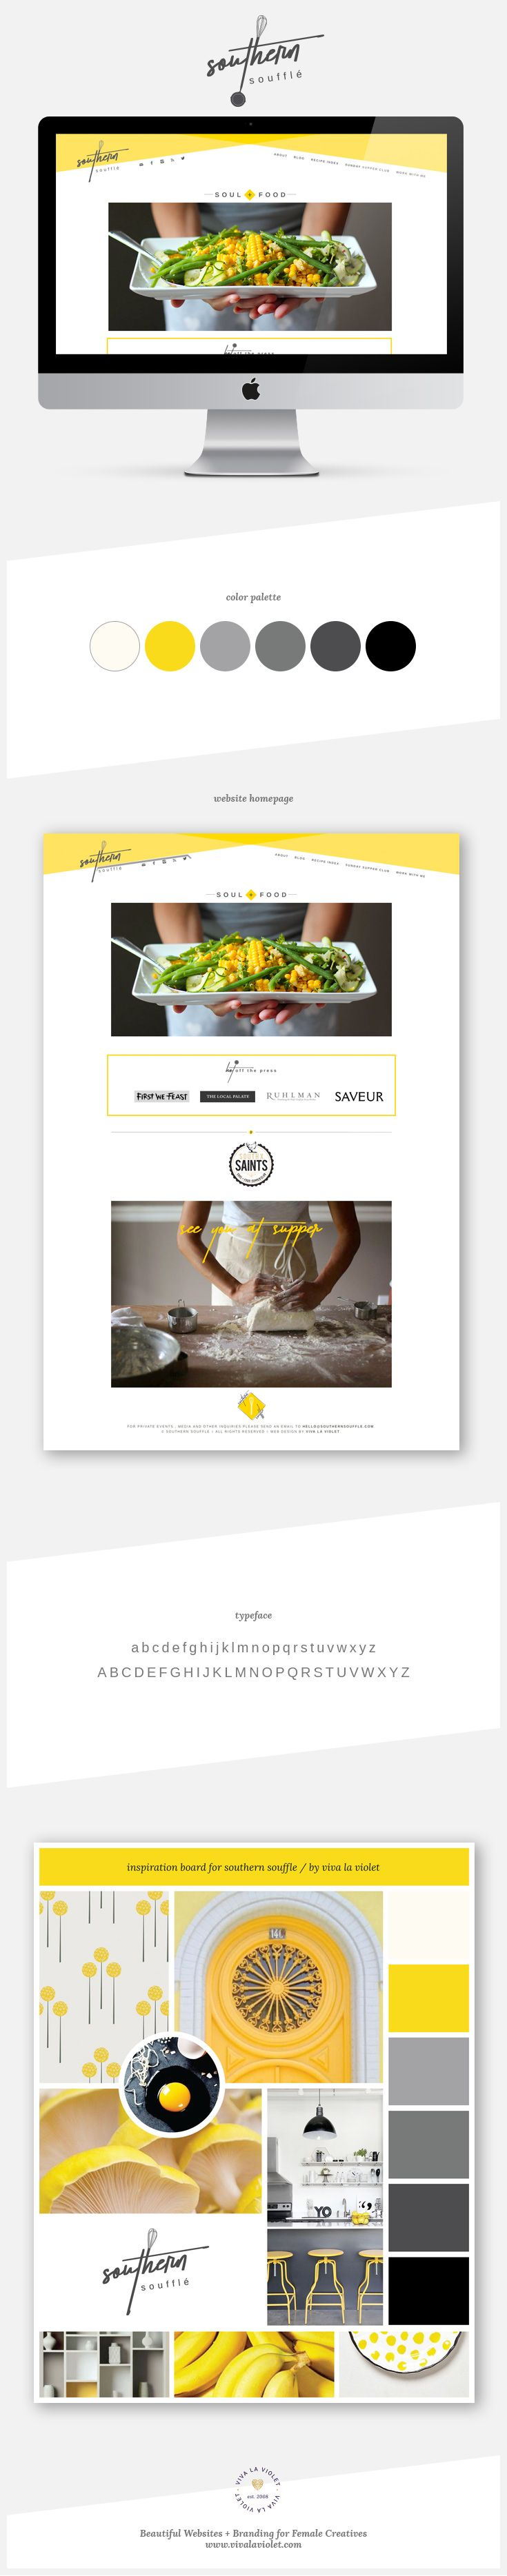 Website Design for Southern Souffle by Viva la Violet | Web Designs and Branding for Female Creatives | Custom WordPress Design